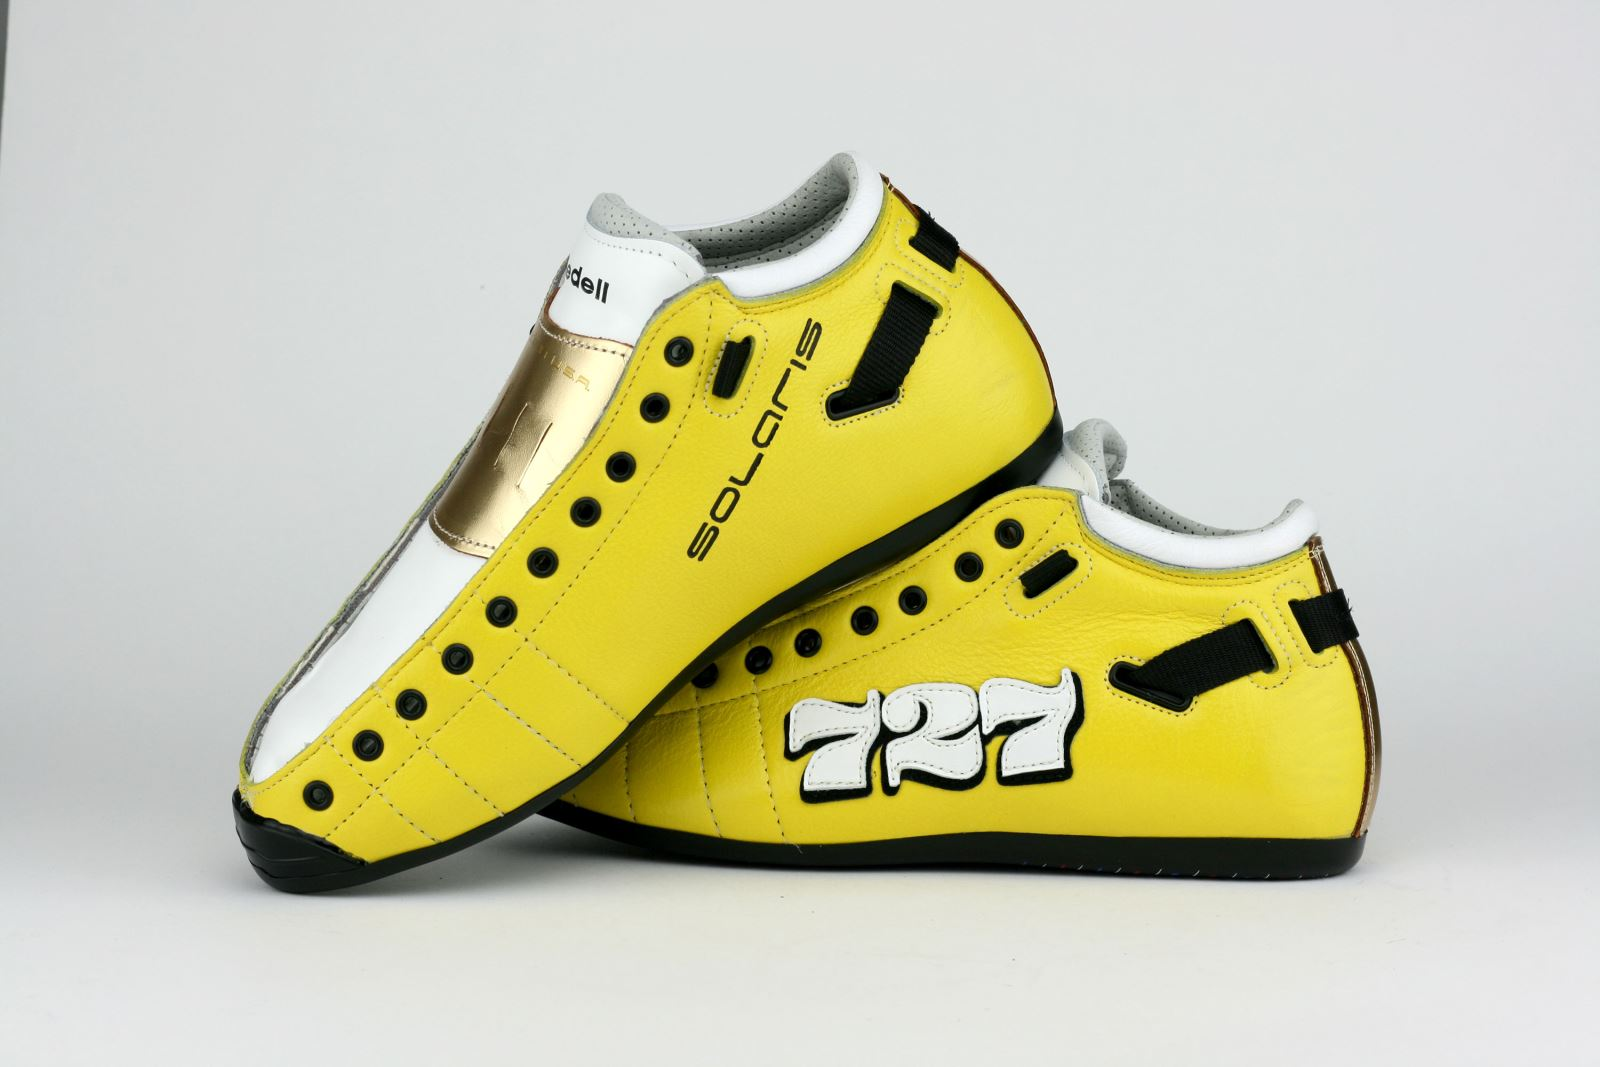 Riedell Superstar Hurtrude Stein's Custom Solaris - Yellow Leather with 727 Graphic